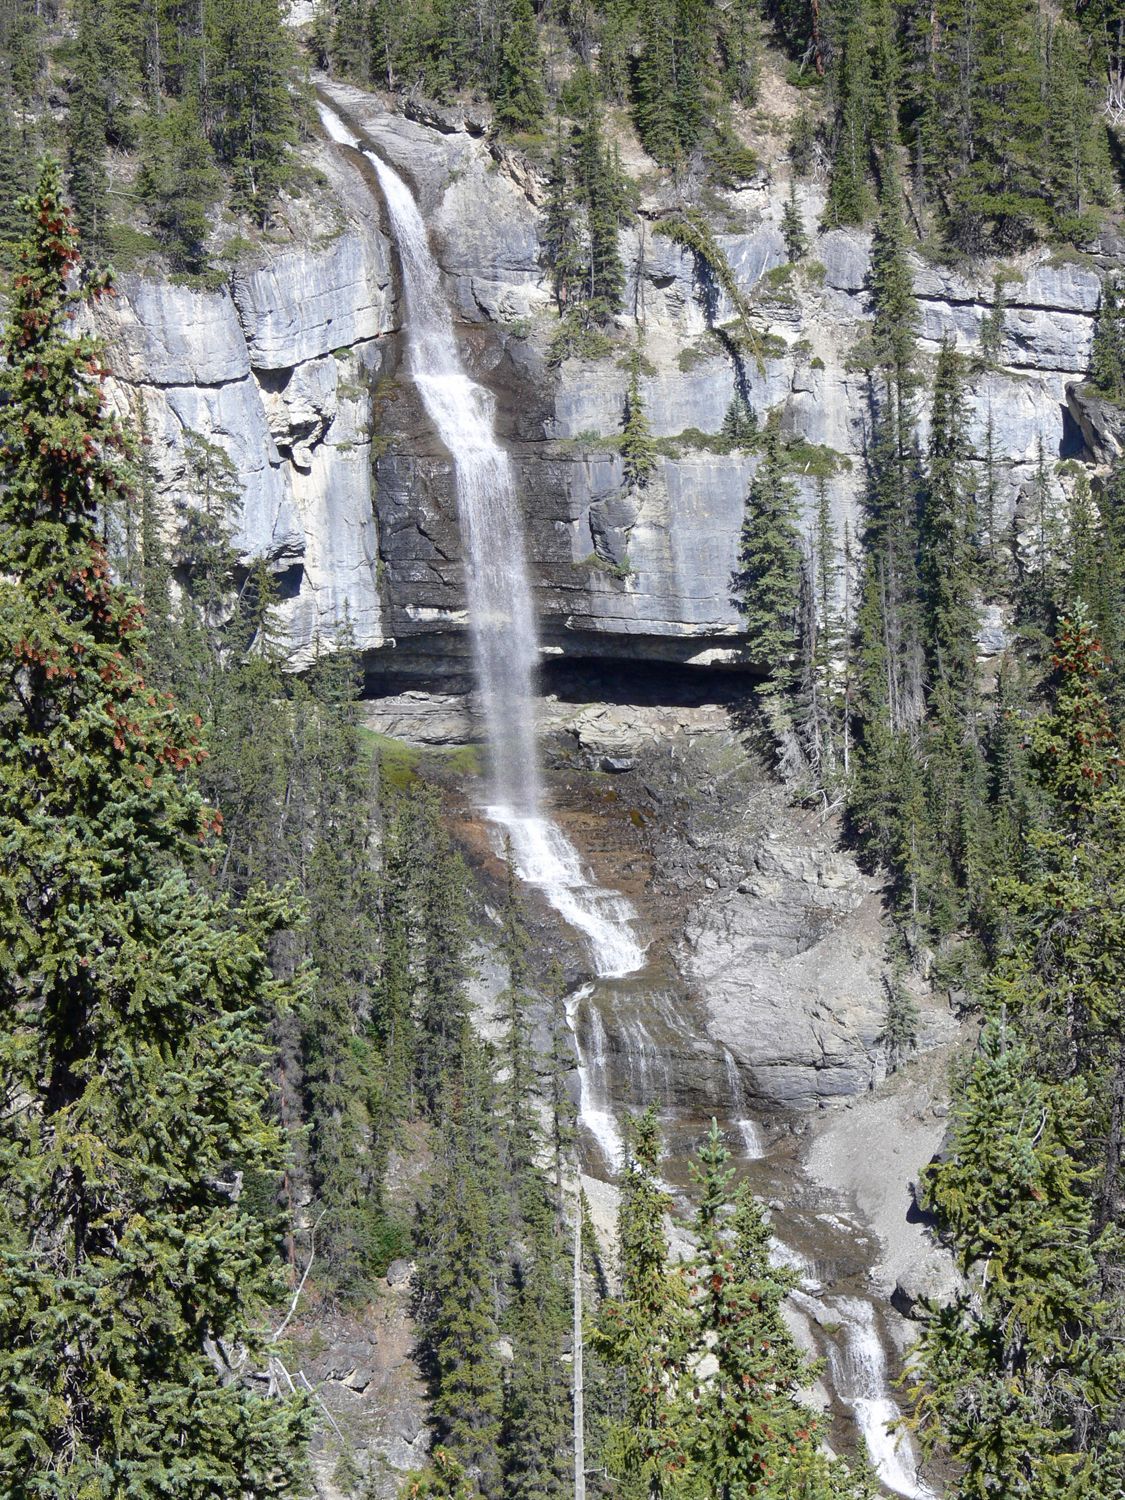 Bridal Veil Falls, Banff NP - Aug 2008